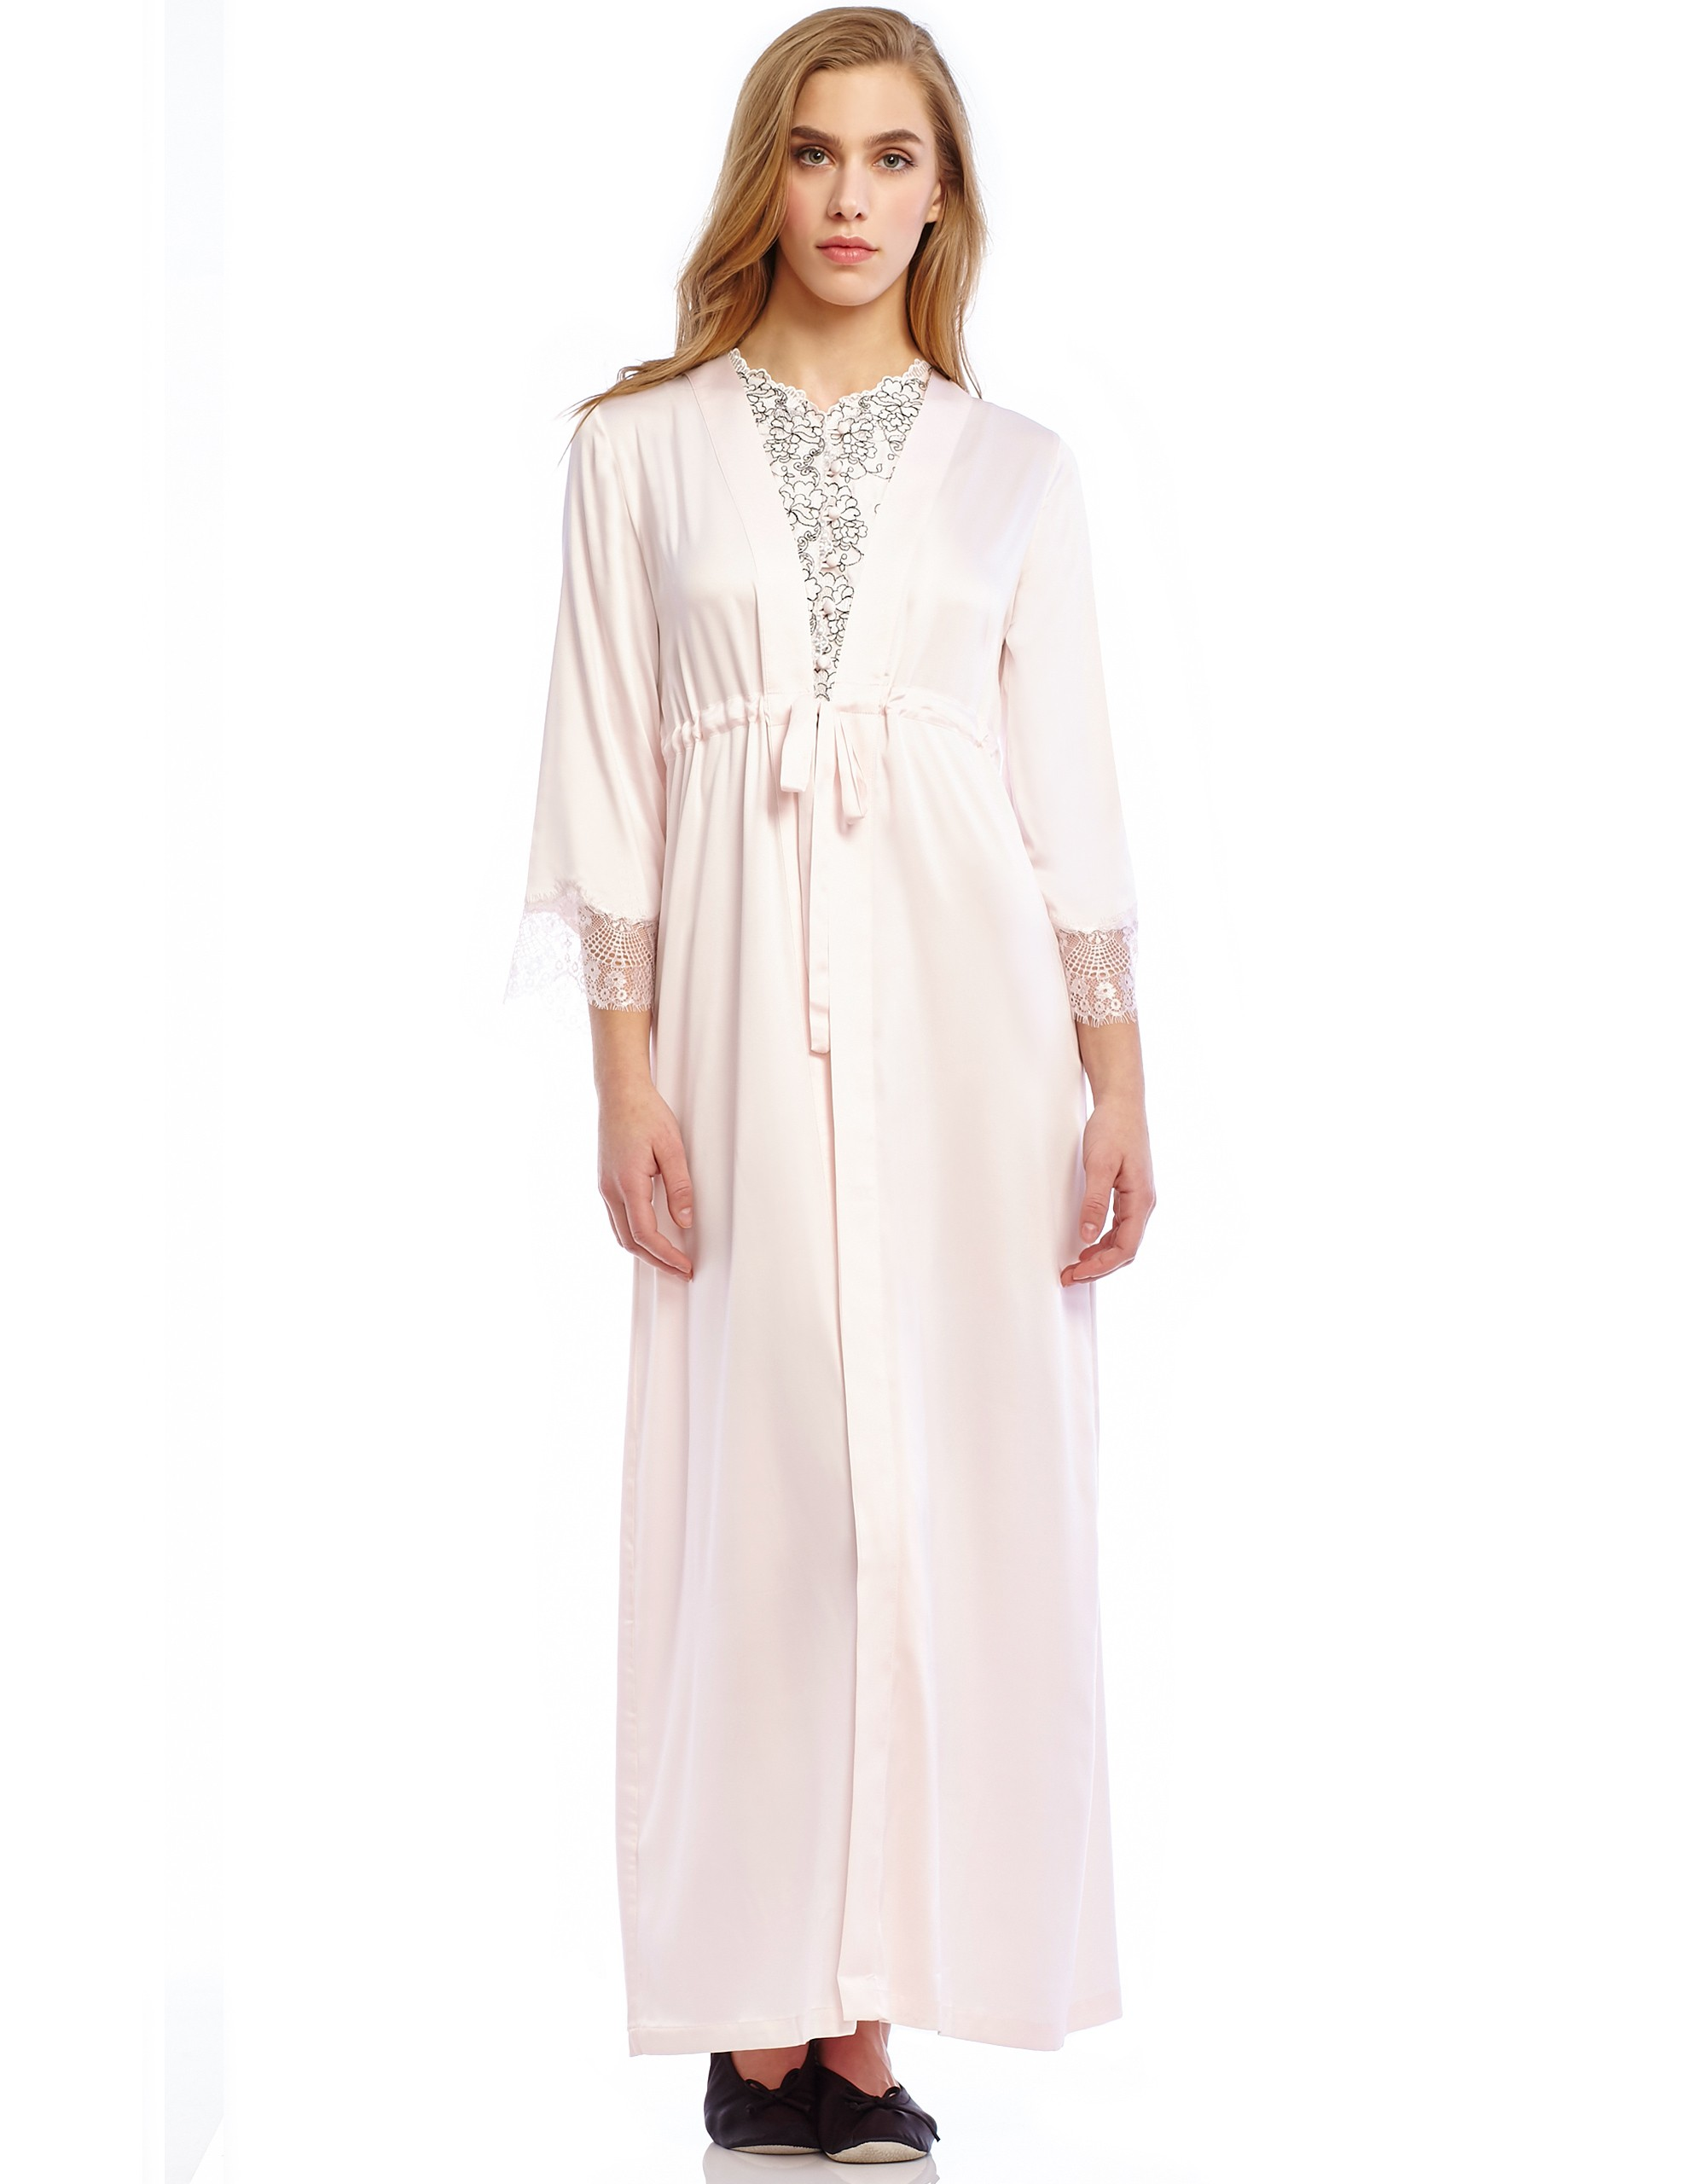 Silky Wrap Morning Robe with Self Tie